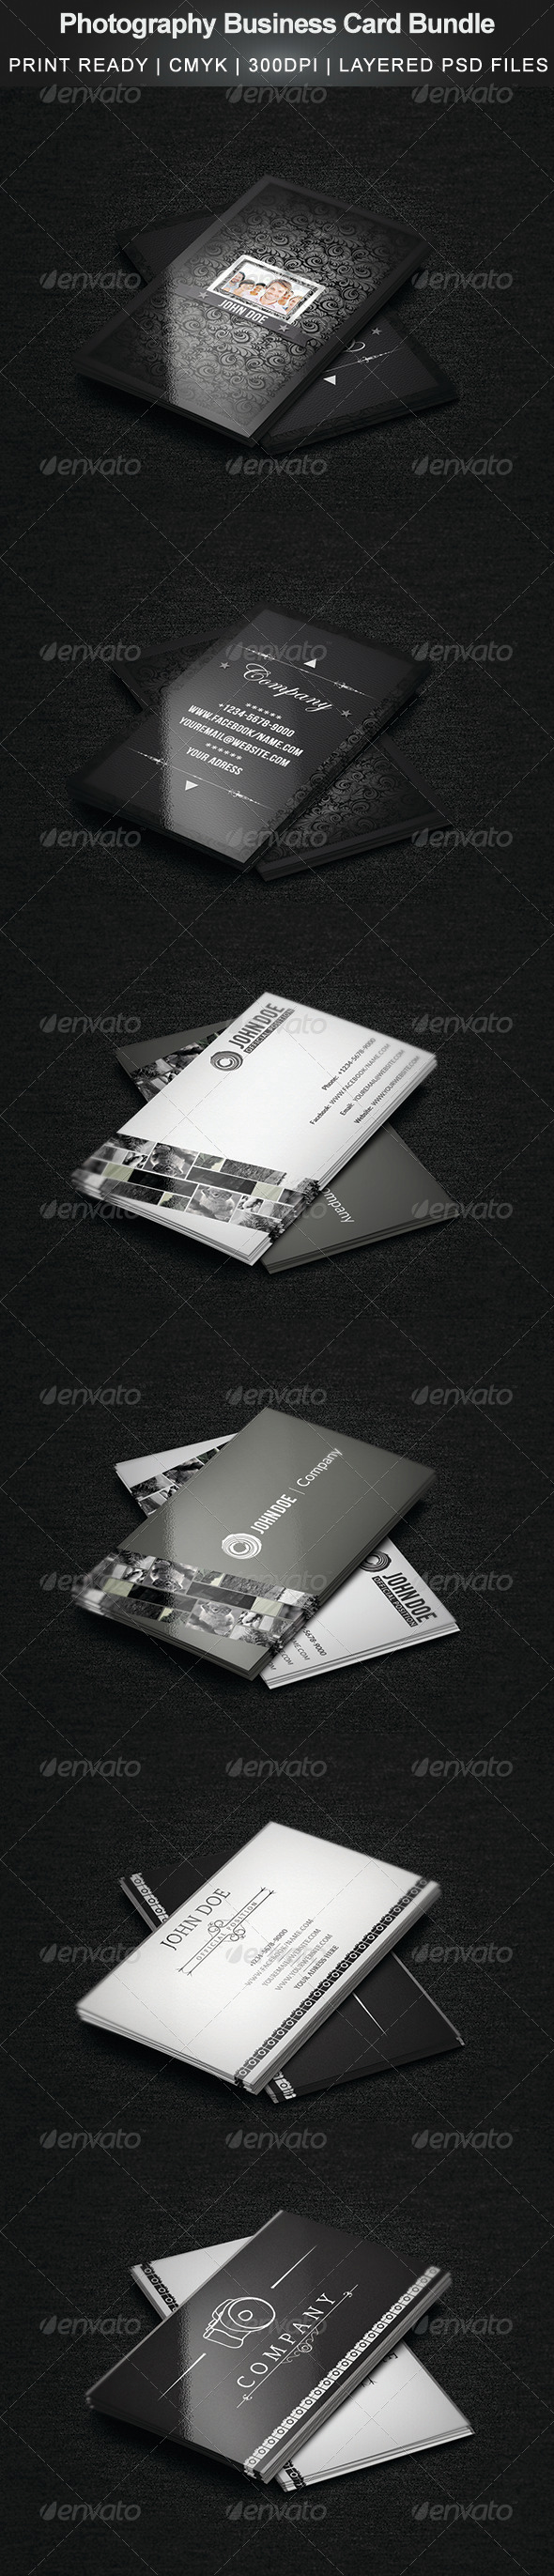 GraphicRiver Photography Business Card Bundle 5256568